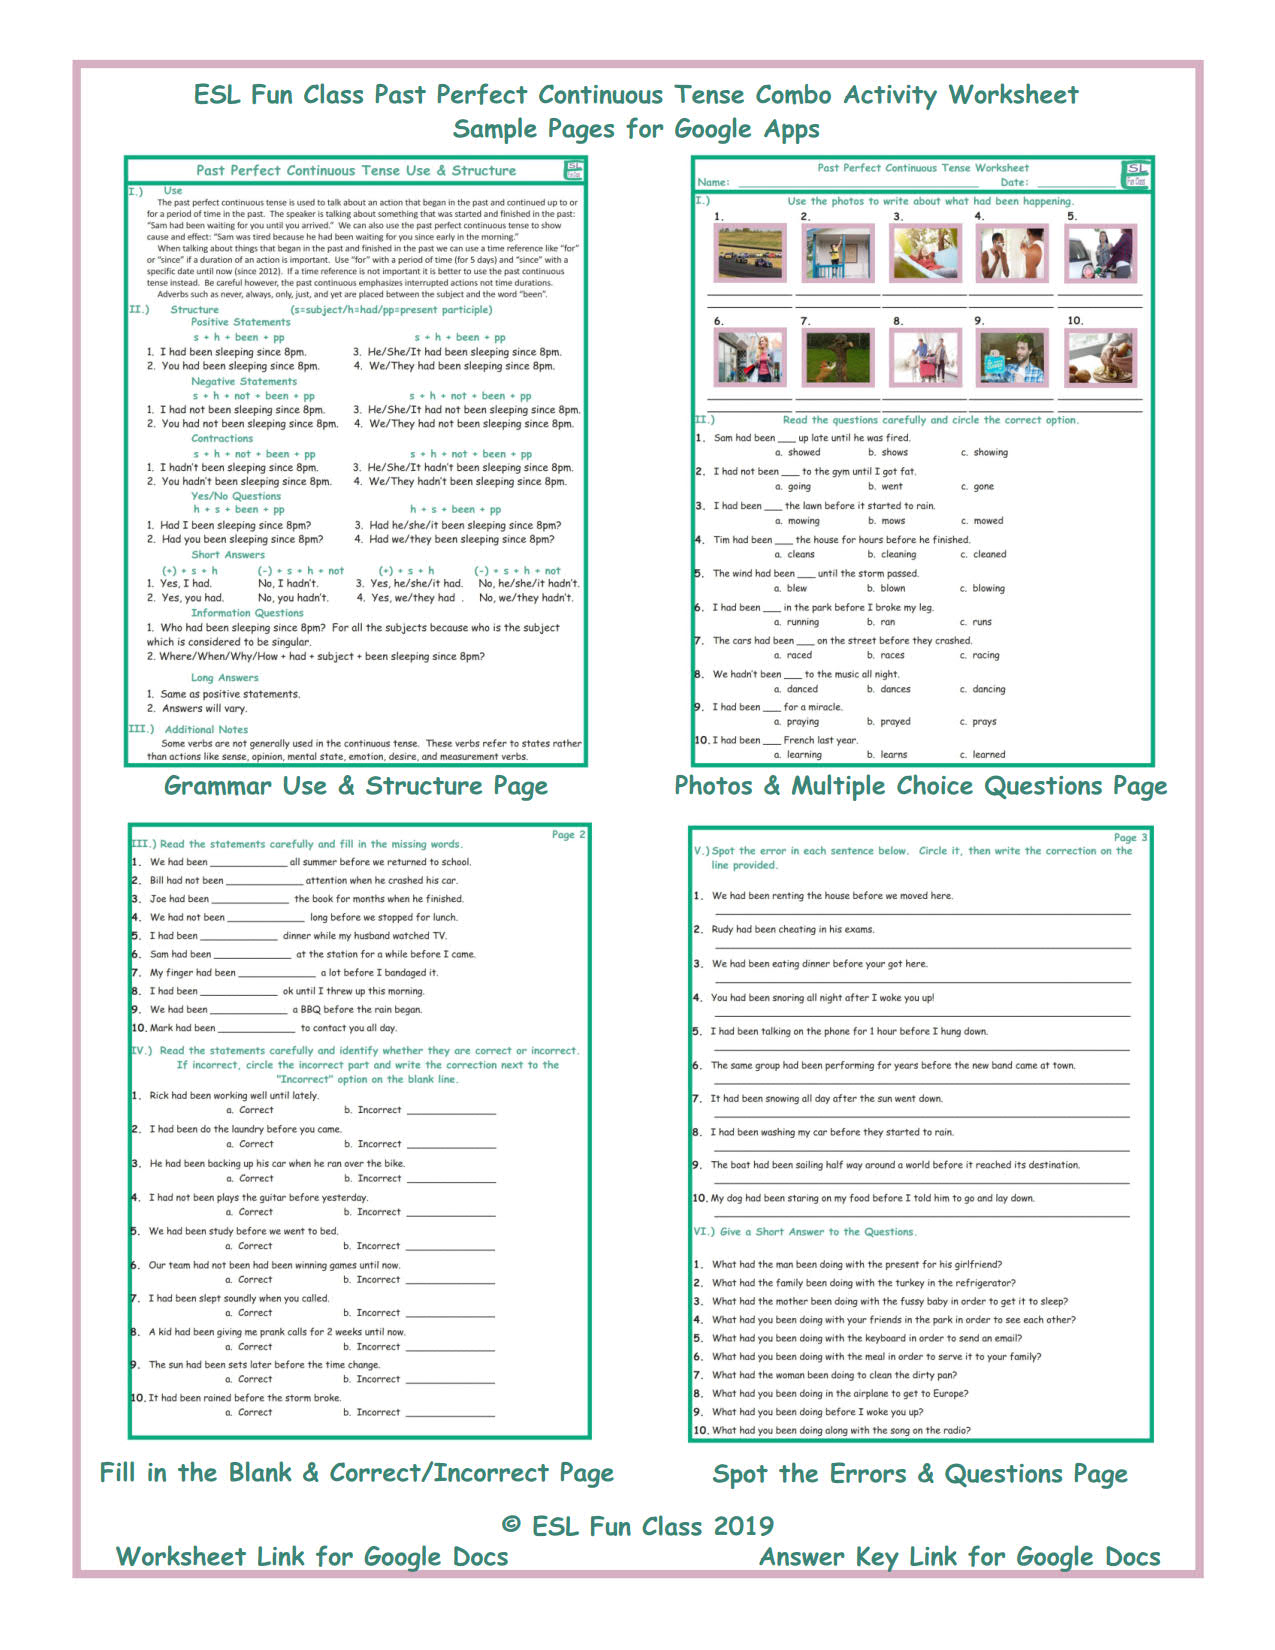 Past Perfect Continuous Tense Combo Interactive Worksheets for Google Apps